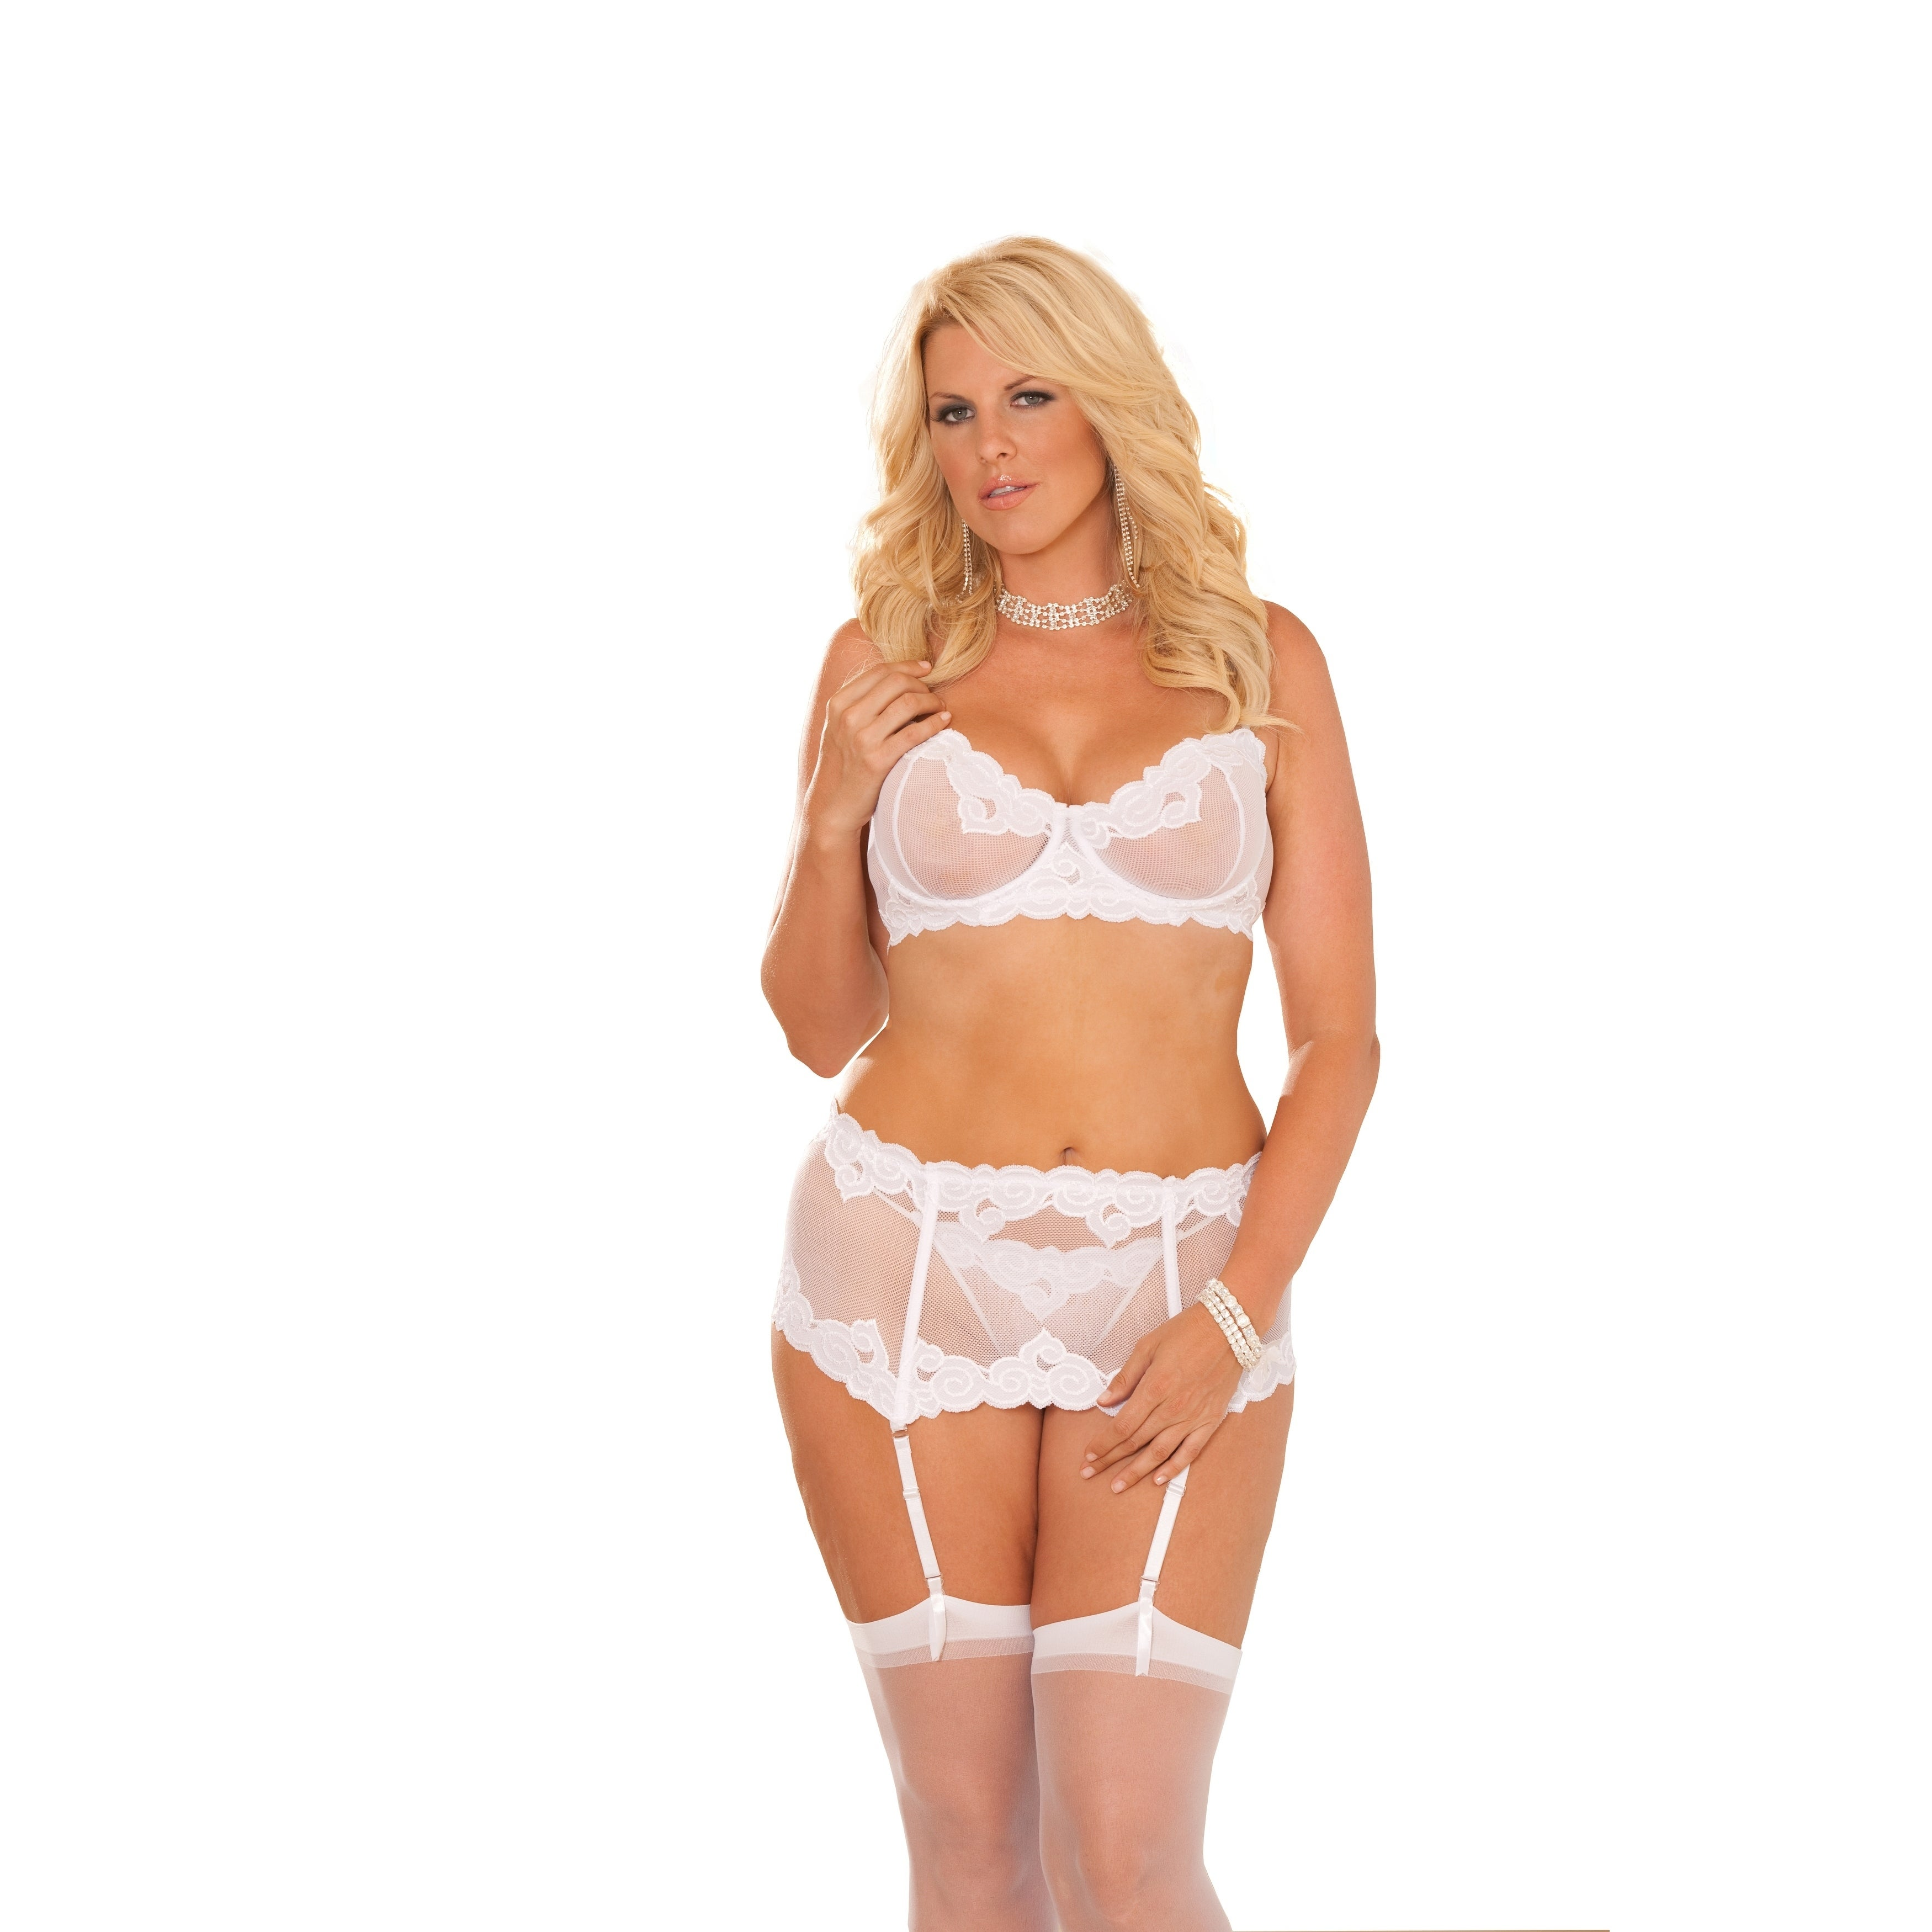 7119ab8bc5 Shop Elegant Moments women s Plus Size embroidered mesh underwire ...